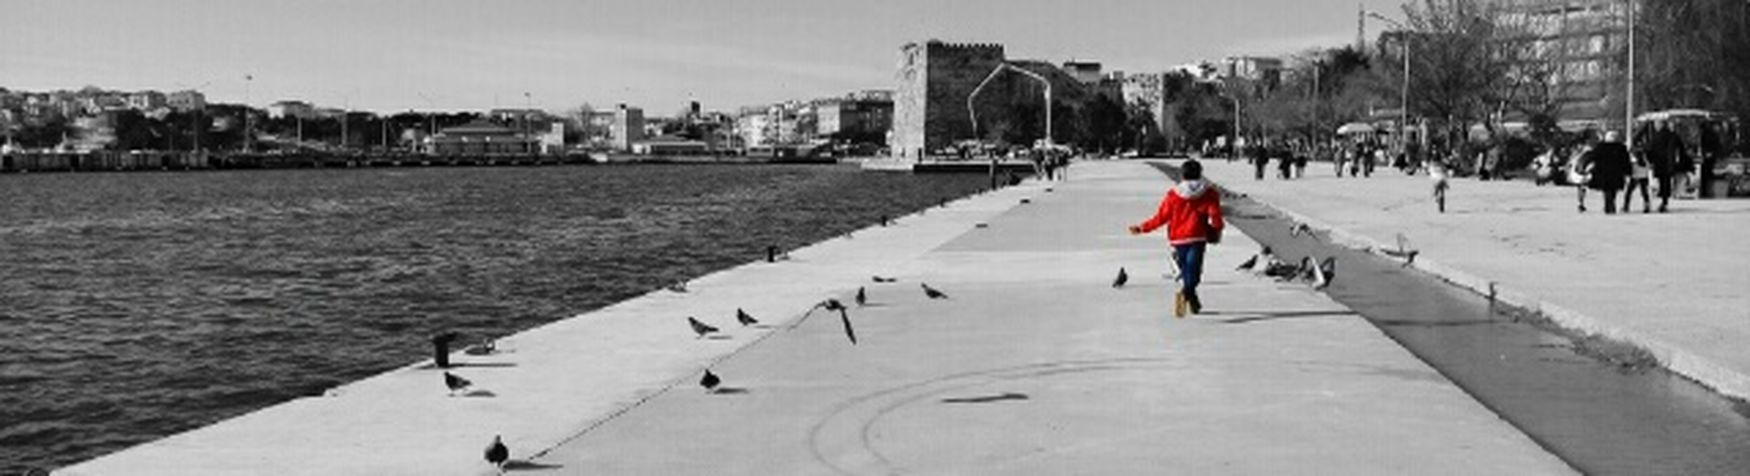 Taking Photos Hello World Enjoying Life Relaxing Hello World Birds Children Running Lifeisbeautiful Blackandwhite Seaside Runing Birds🐦⛅